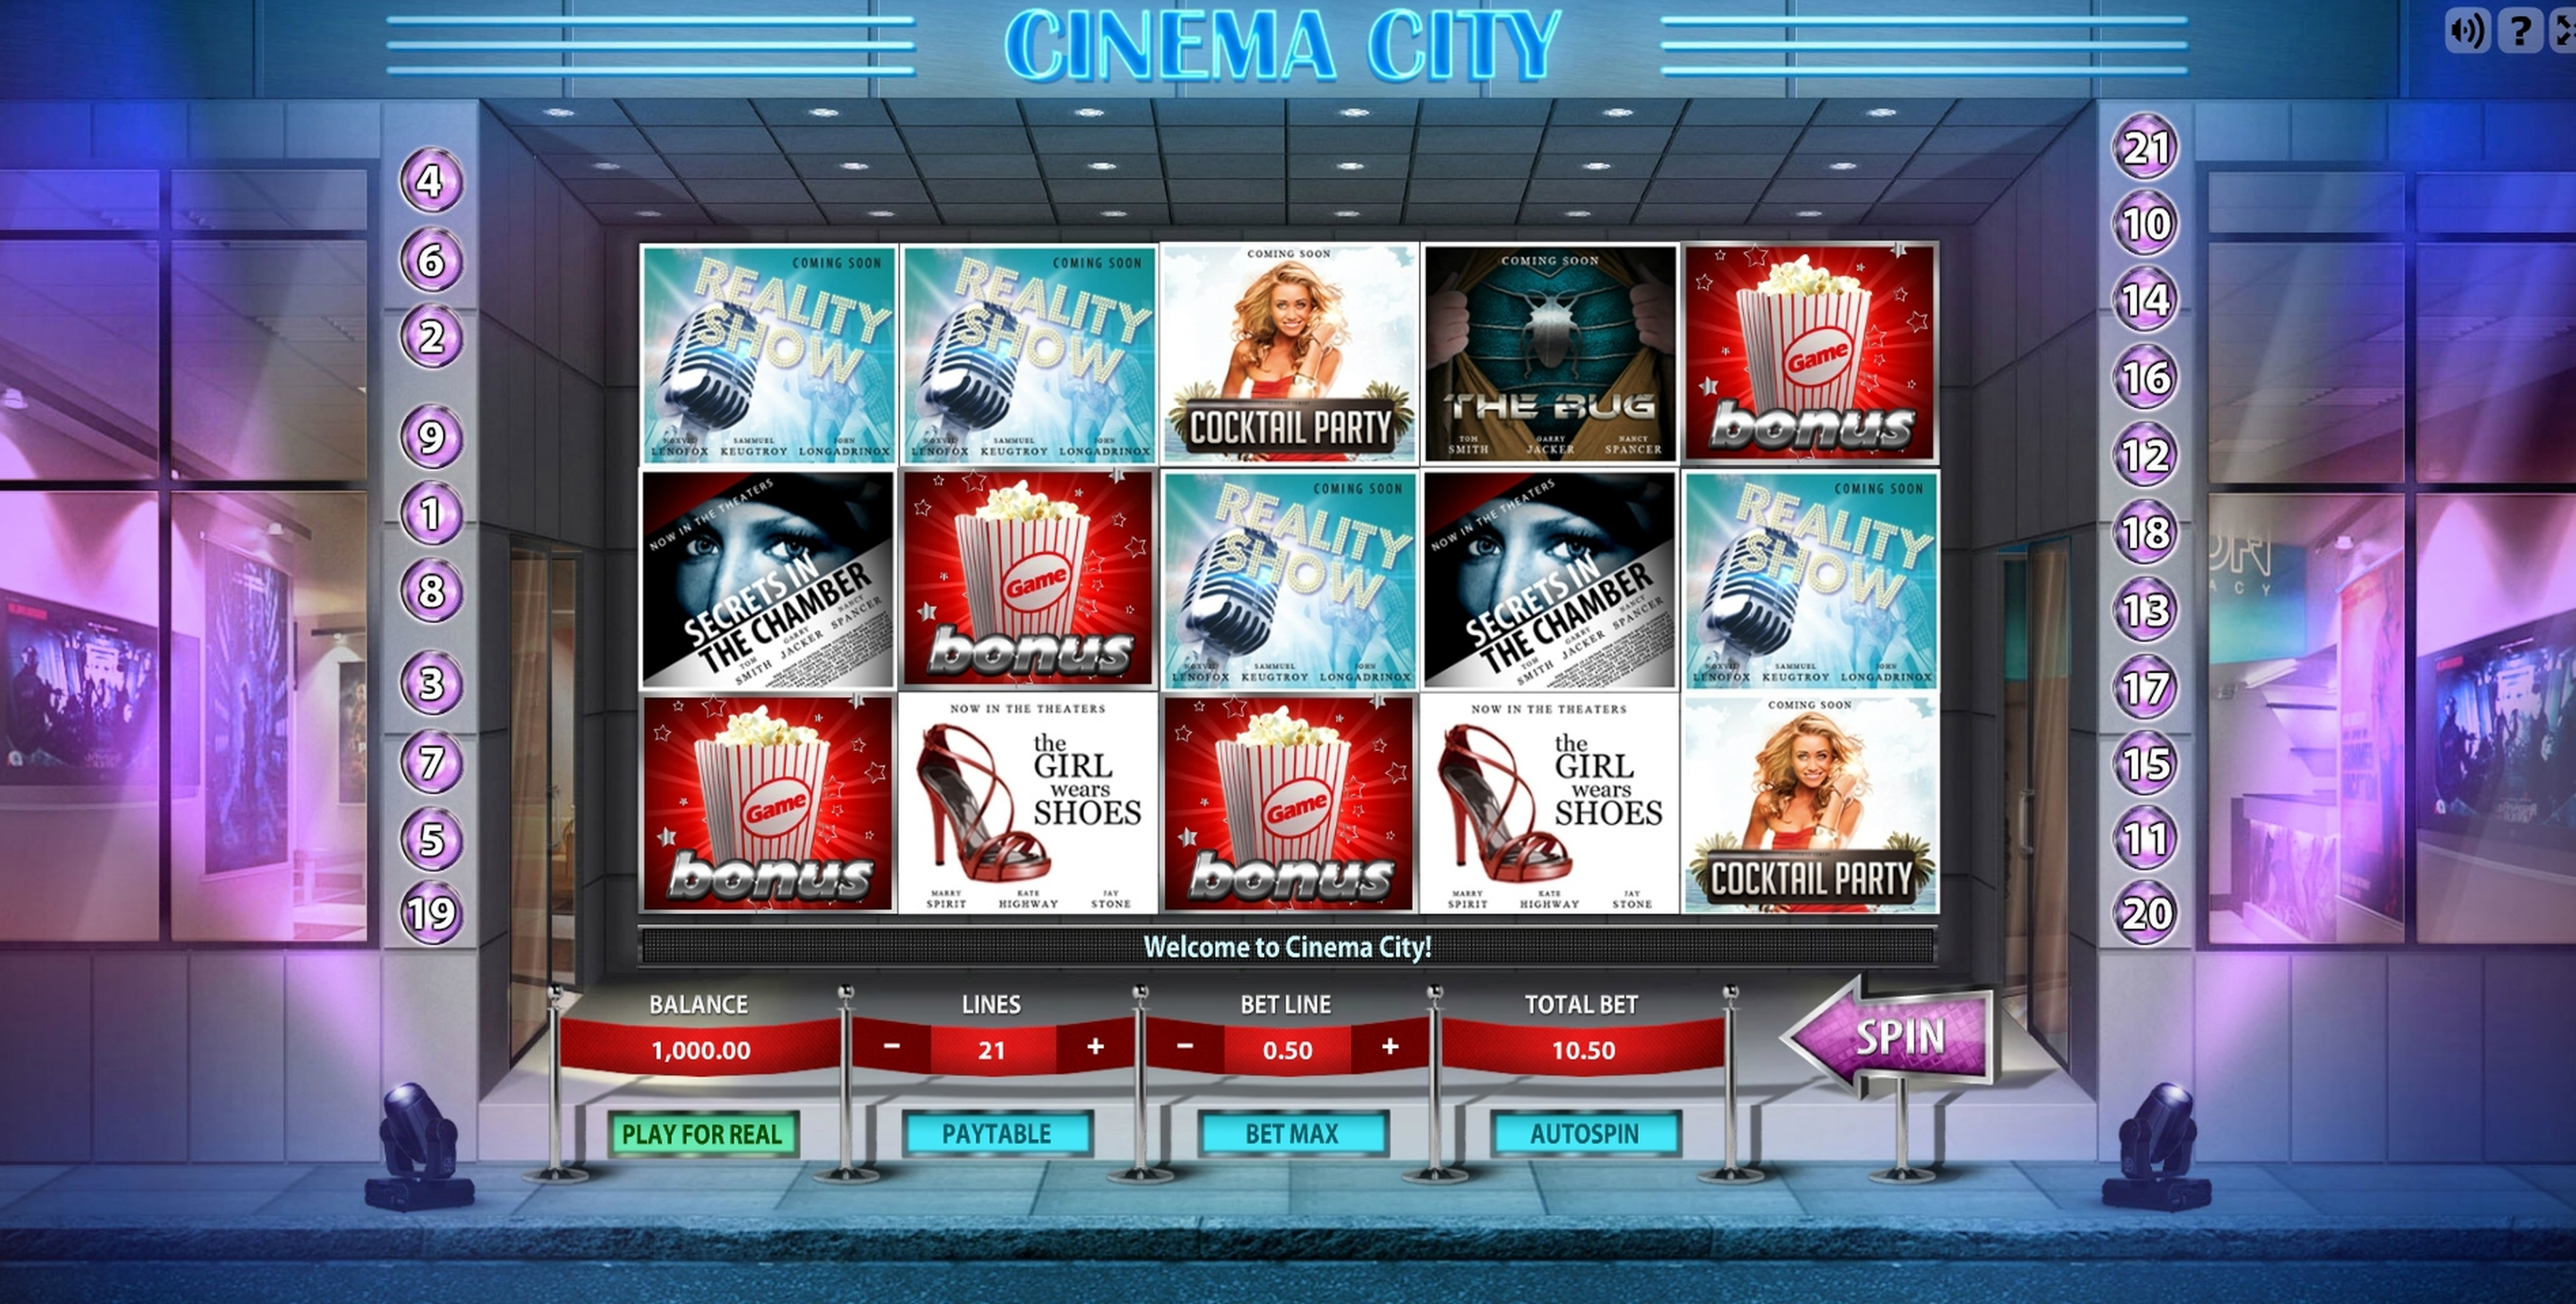 Reels in Cinema City Slot Game by Gamescale Software